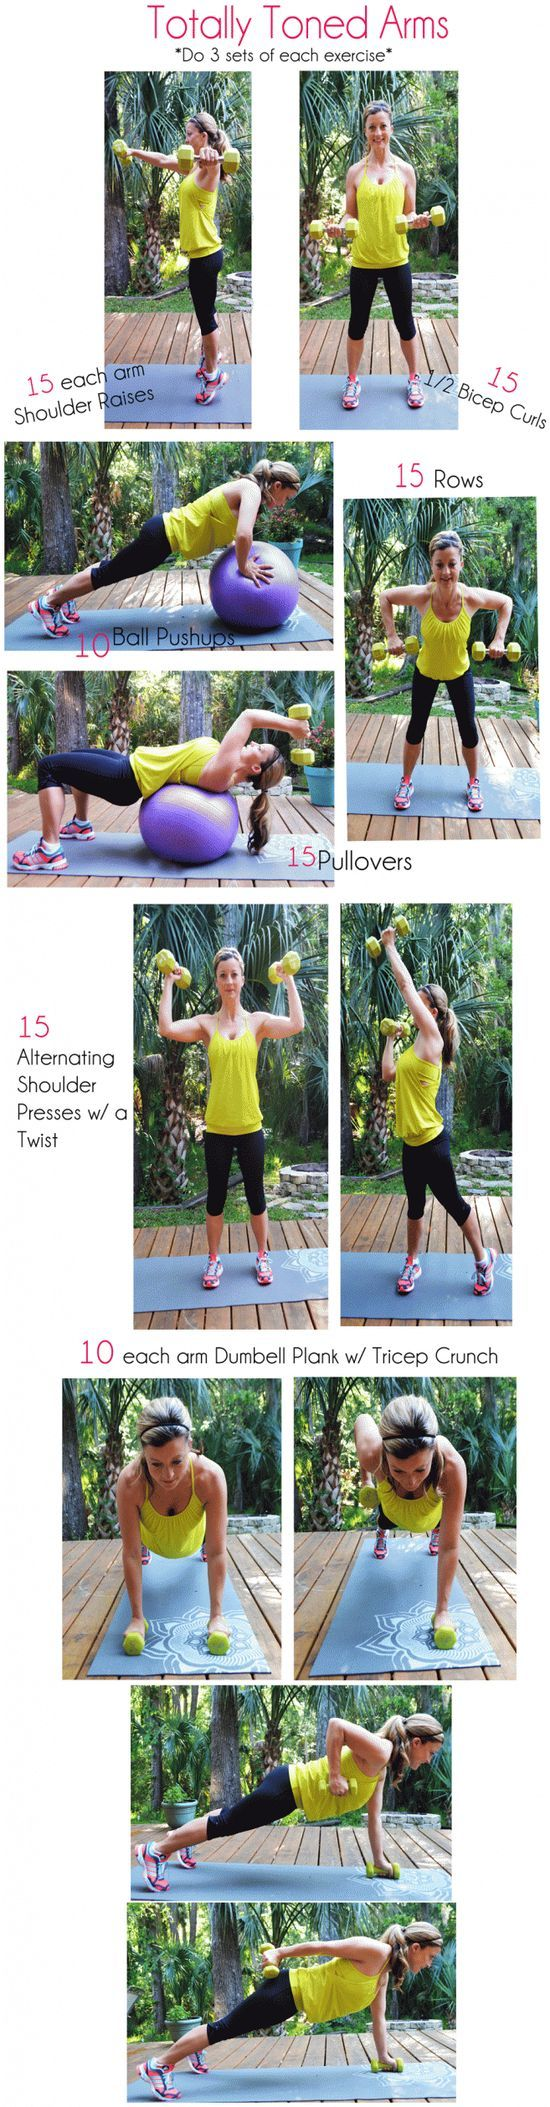 totally toned #Workout Exercises| http://workoutexercisesezekiel.blogspot.com